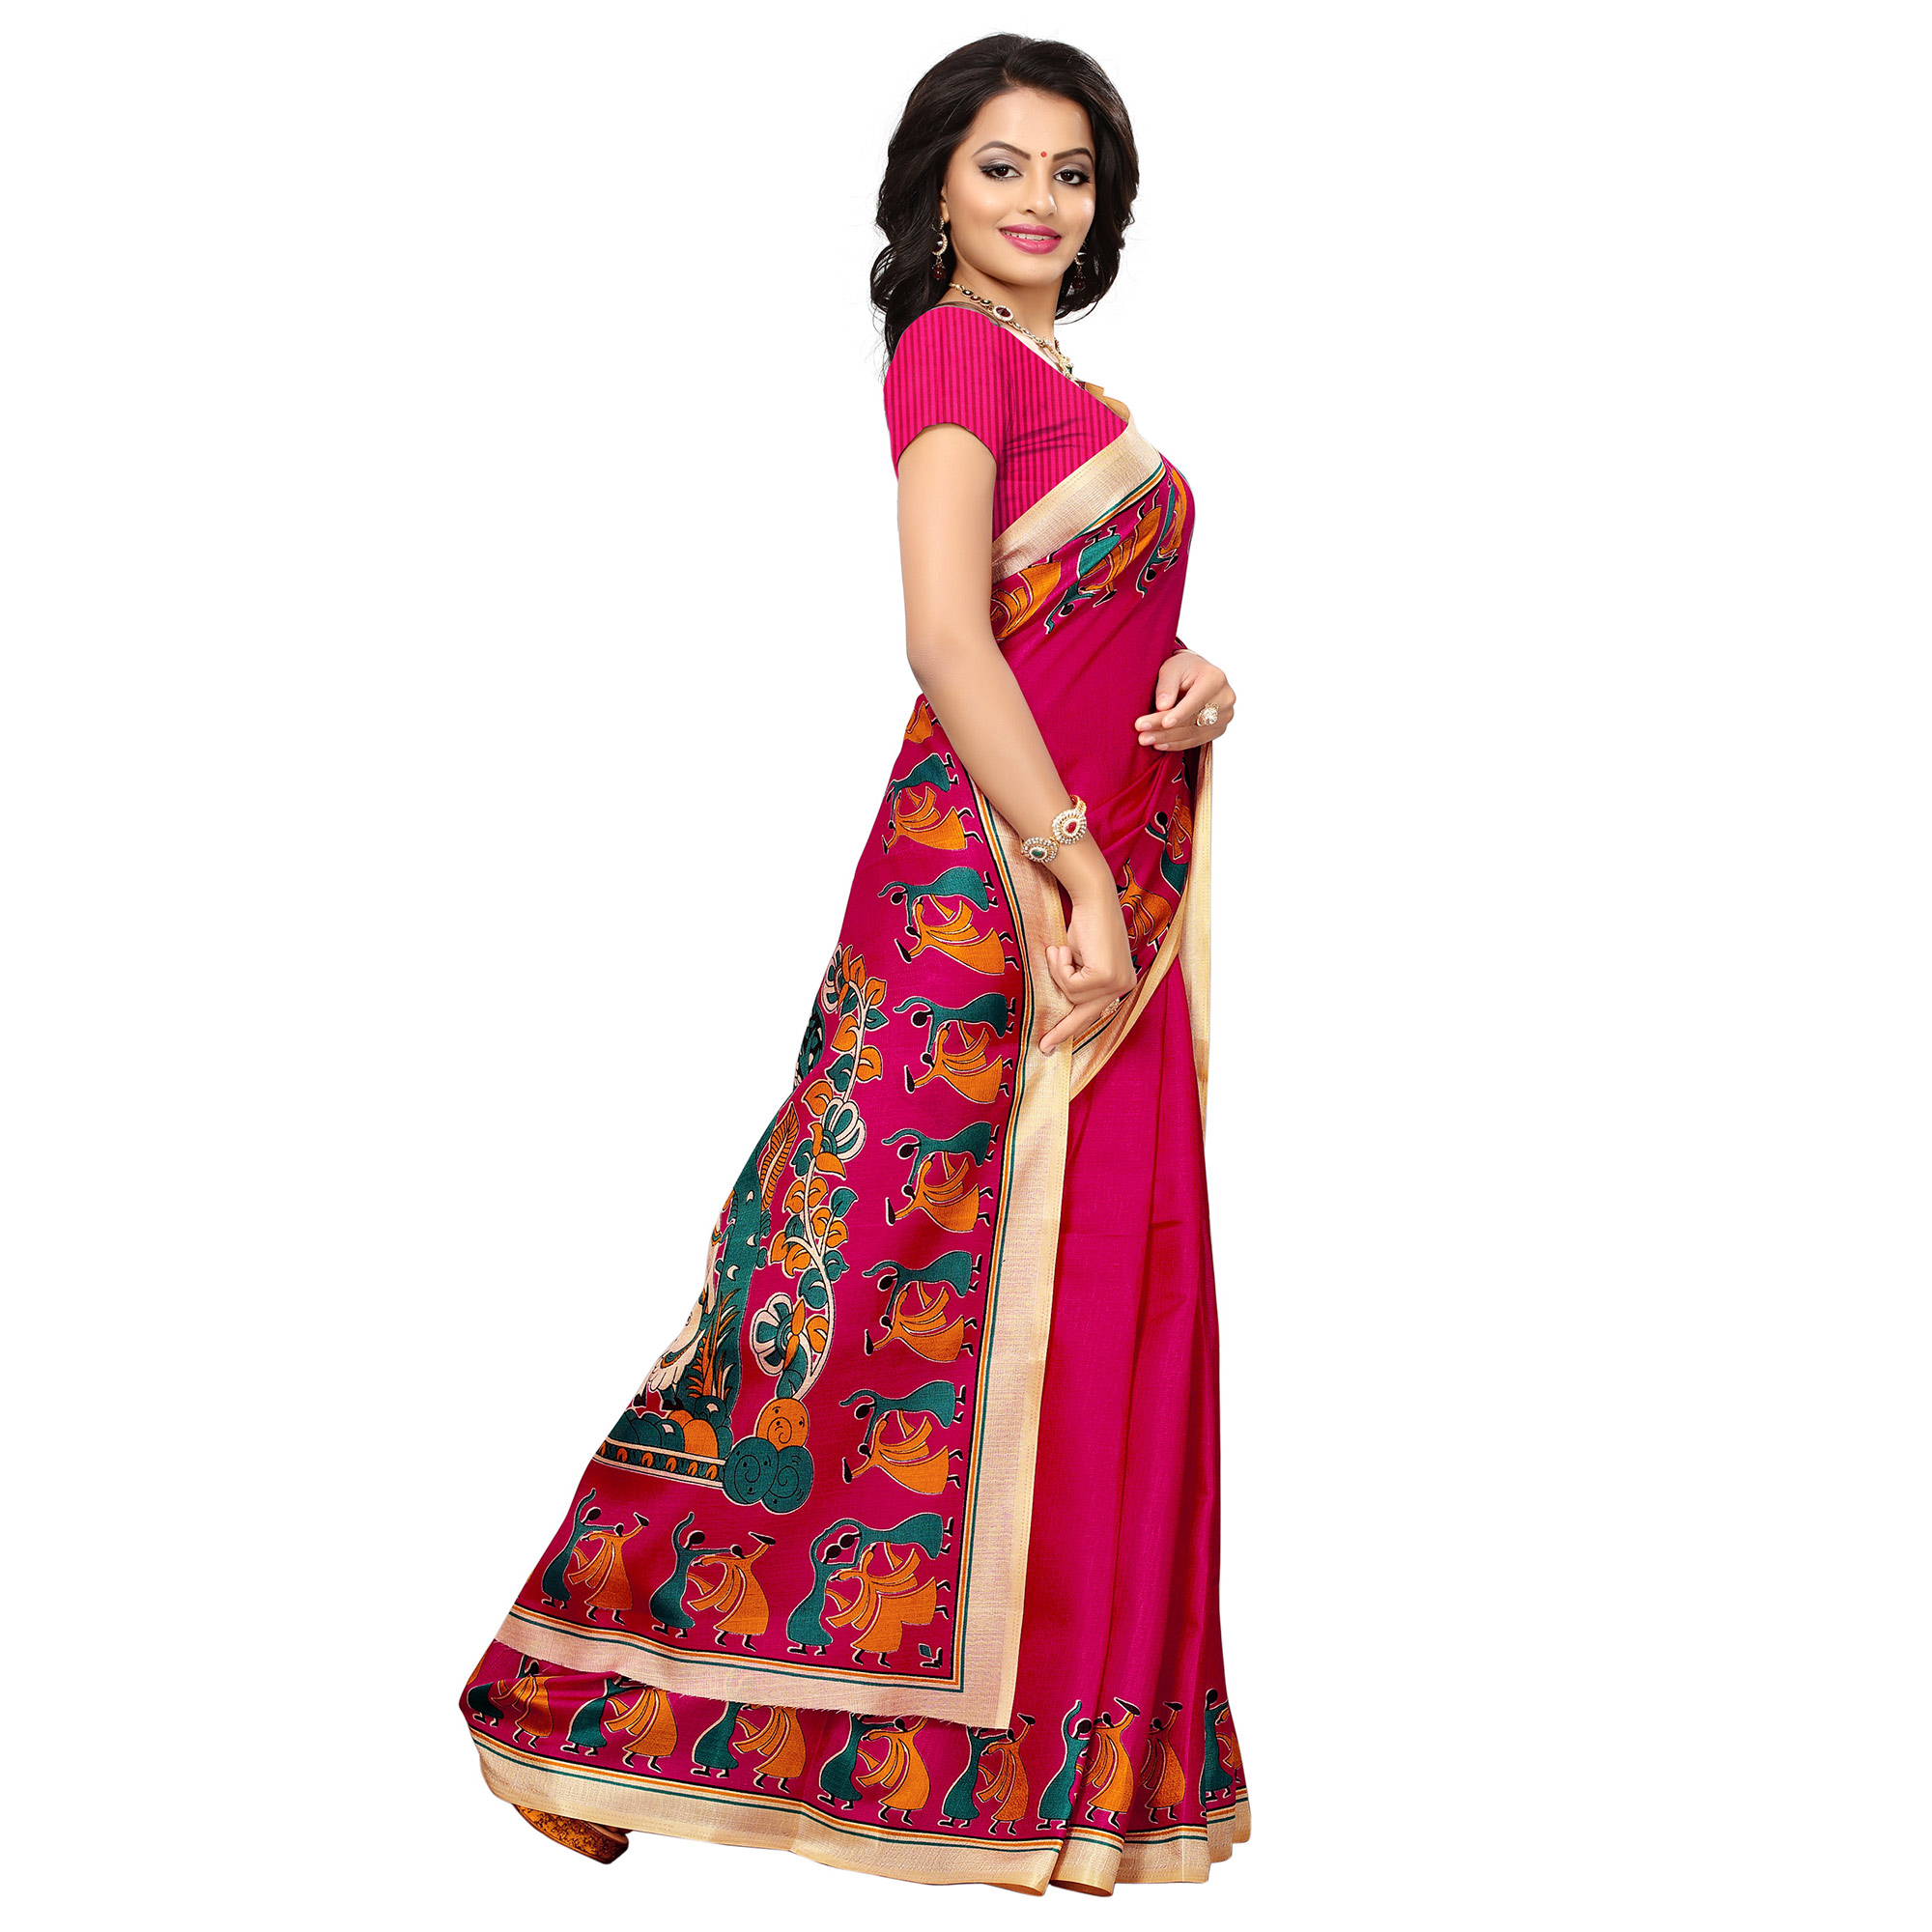 Innovative Rani Pink Colored Printed Festive Wear Khadi Silk Saree